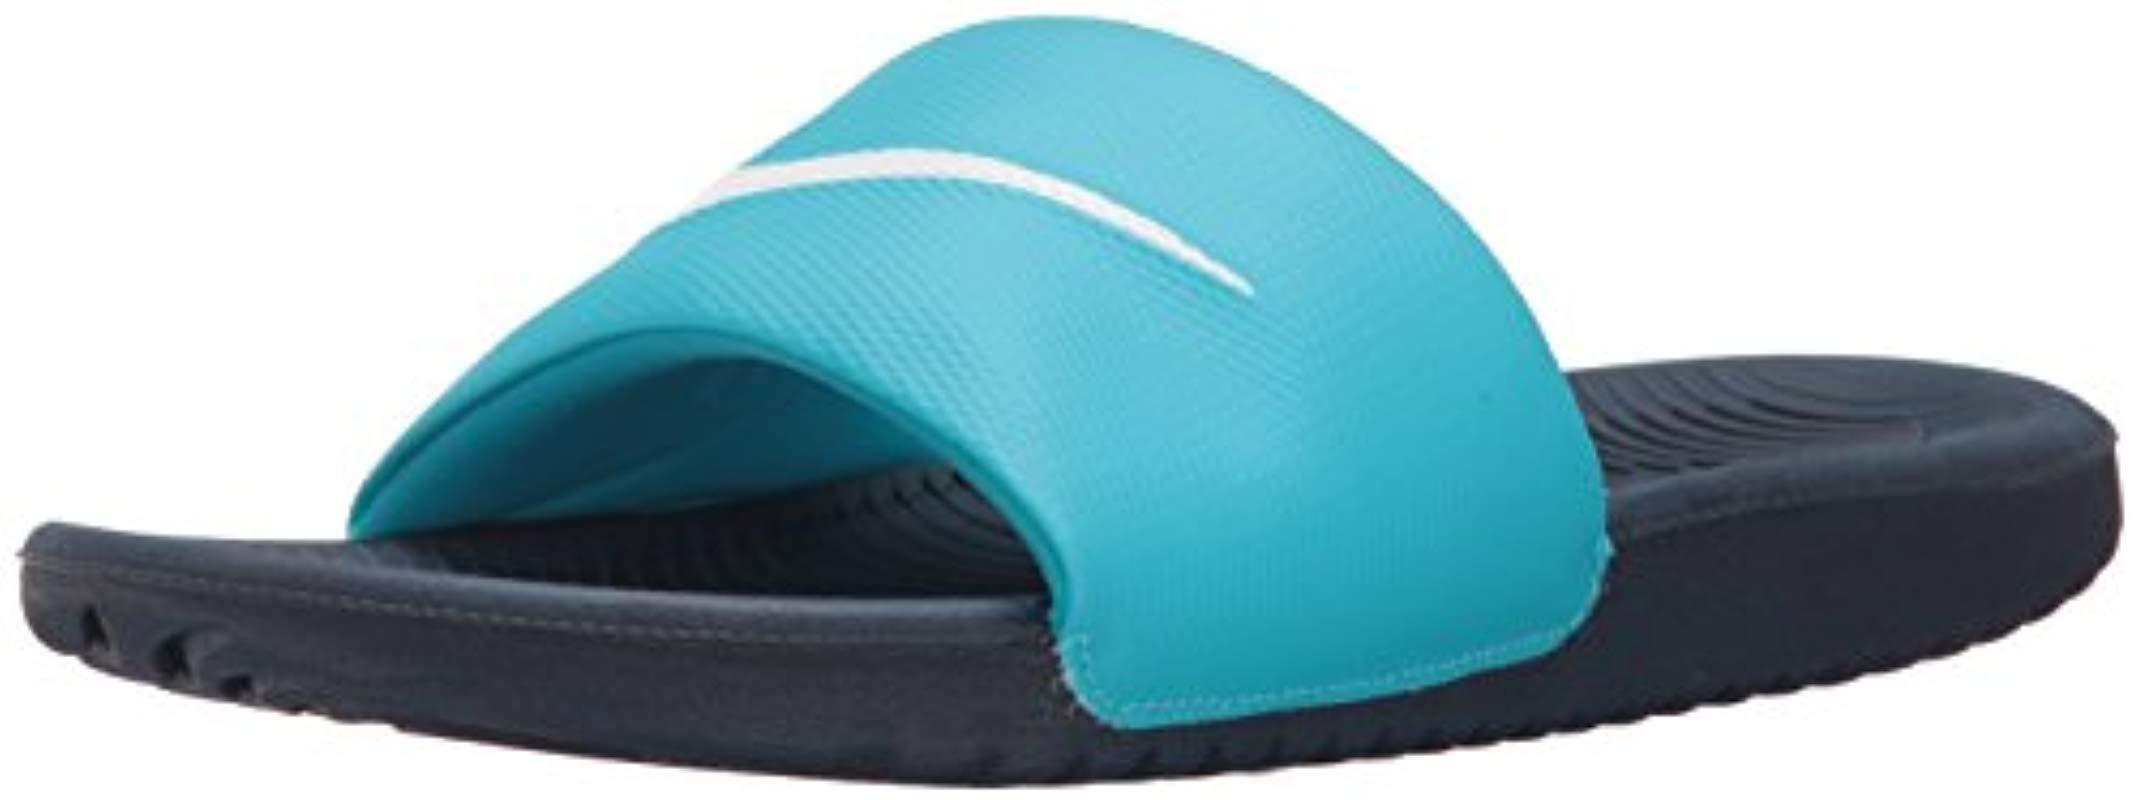 b547809ea315 Lyst - Nike Kawa Slide Sandal in Blue - Save 20%